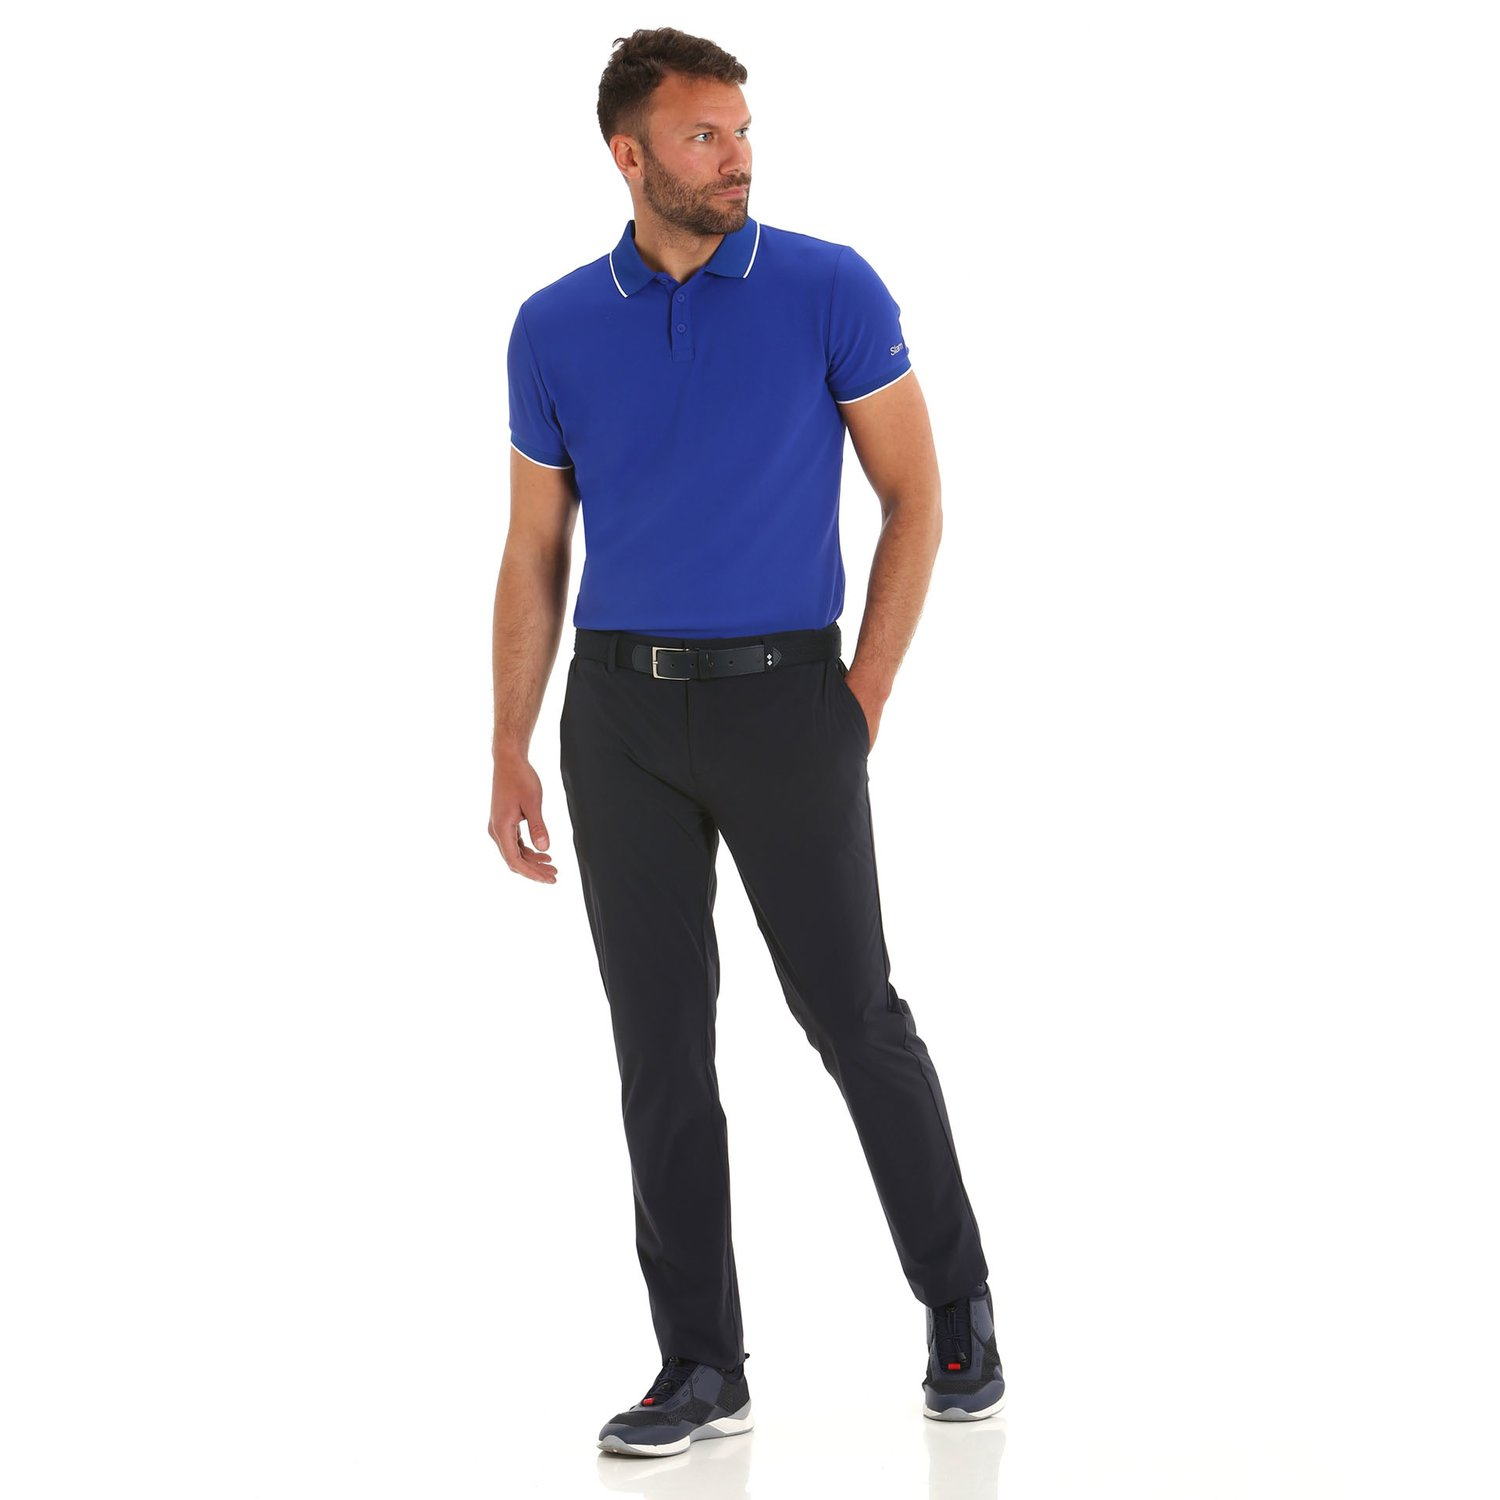 Trousers Reef - Marinenblau